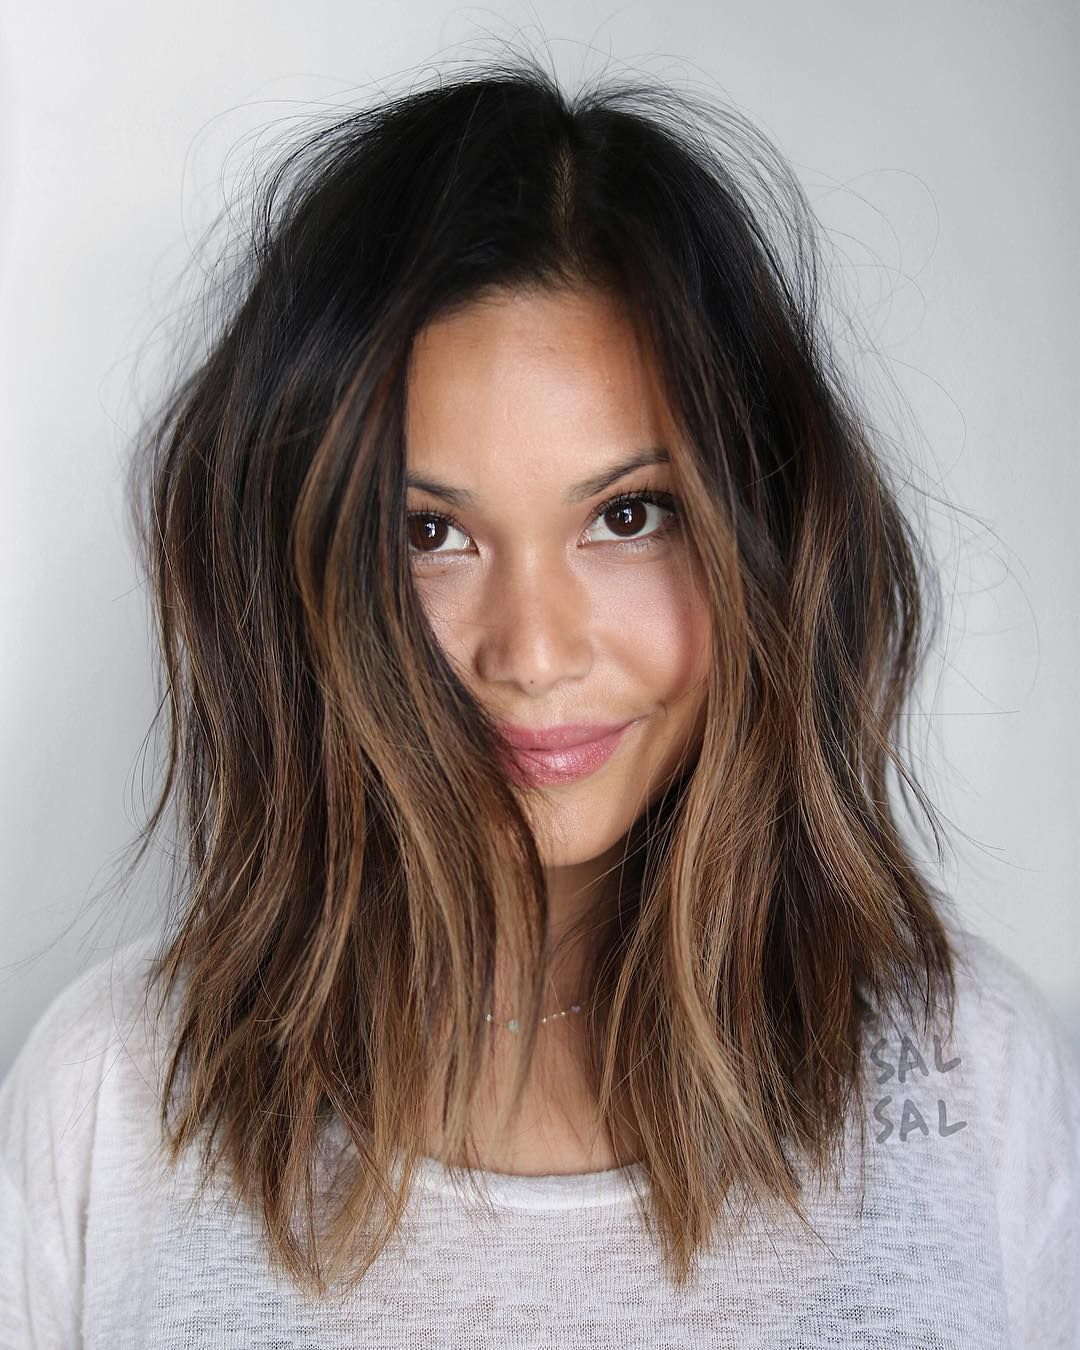 "SAL SALCEDO on Instagram: ""Done-Undone� #salsalhair #doneundone #effortlesshair"""